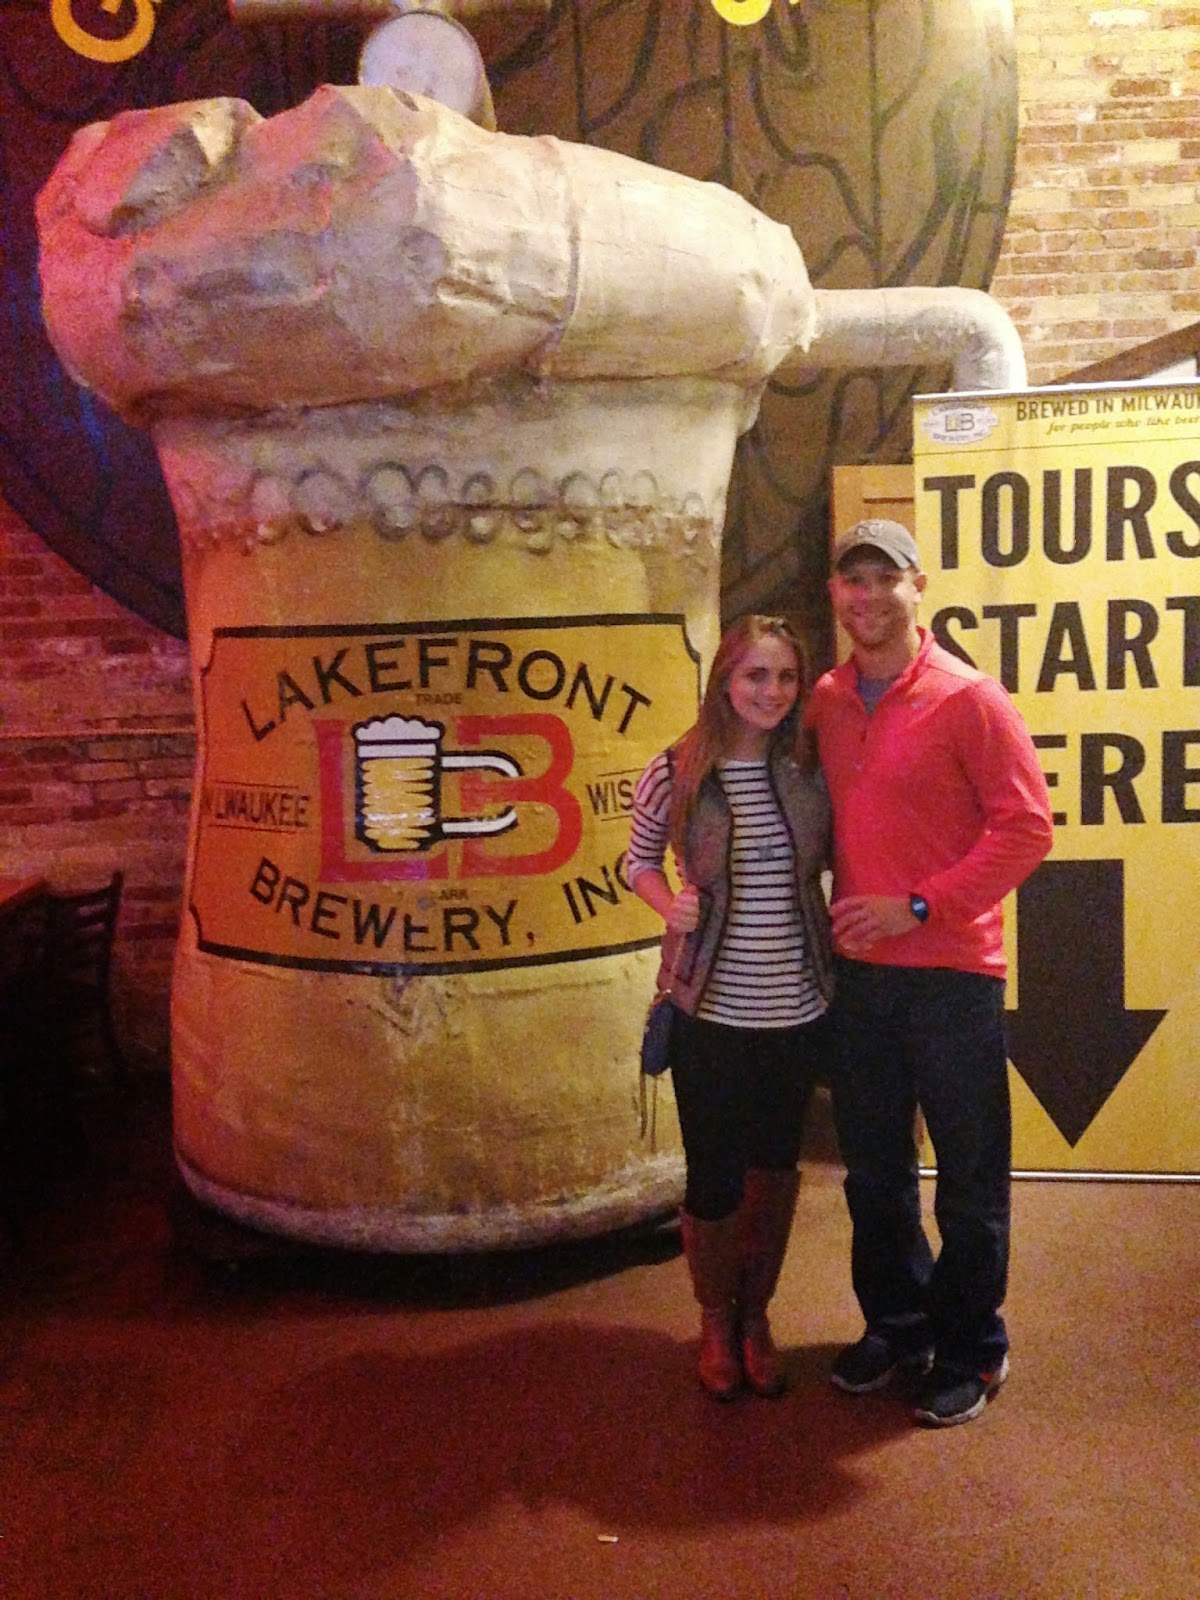 lakefront brewery tour review